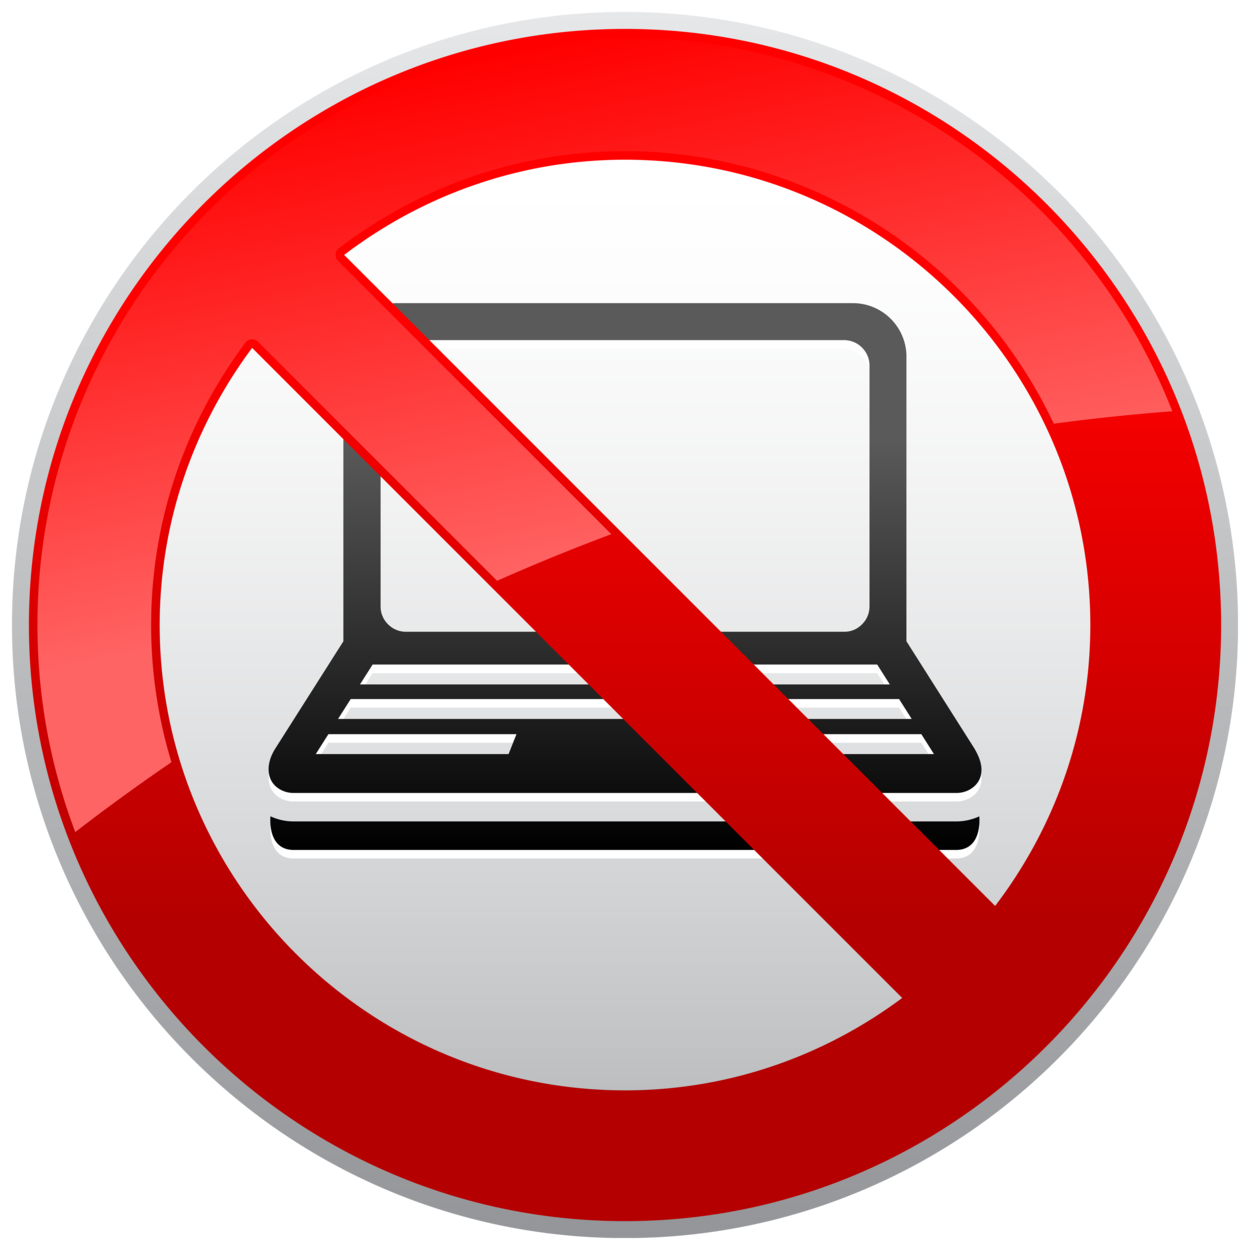 No Laptop Prohibition Sign PNG Clipart